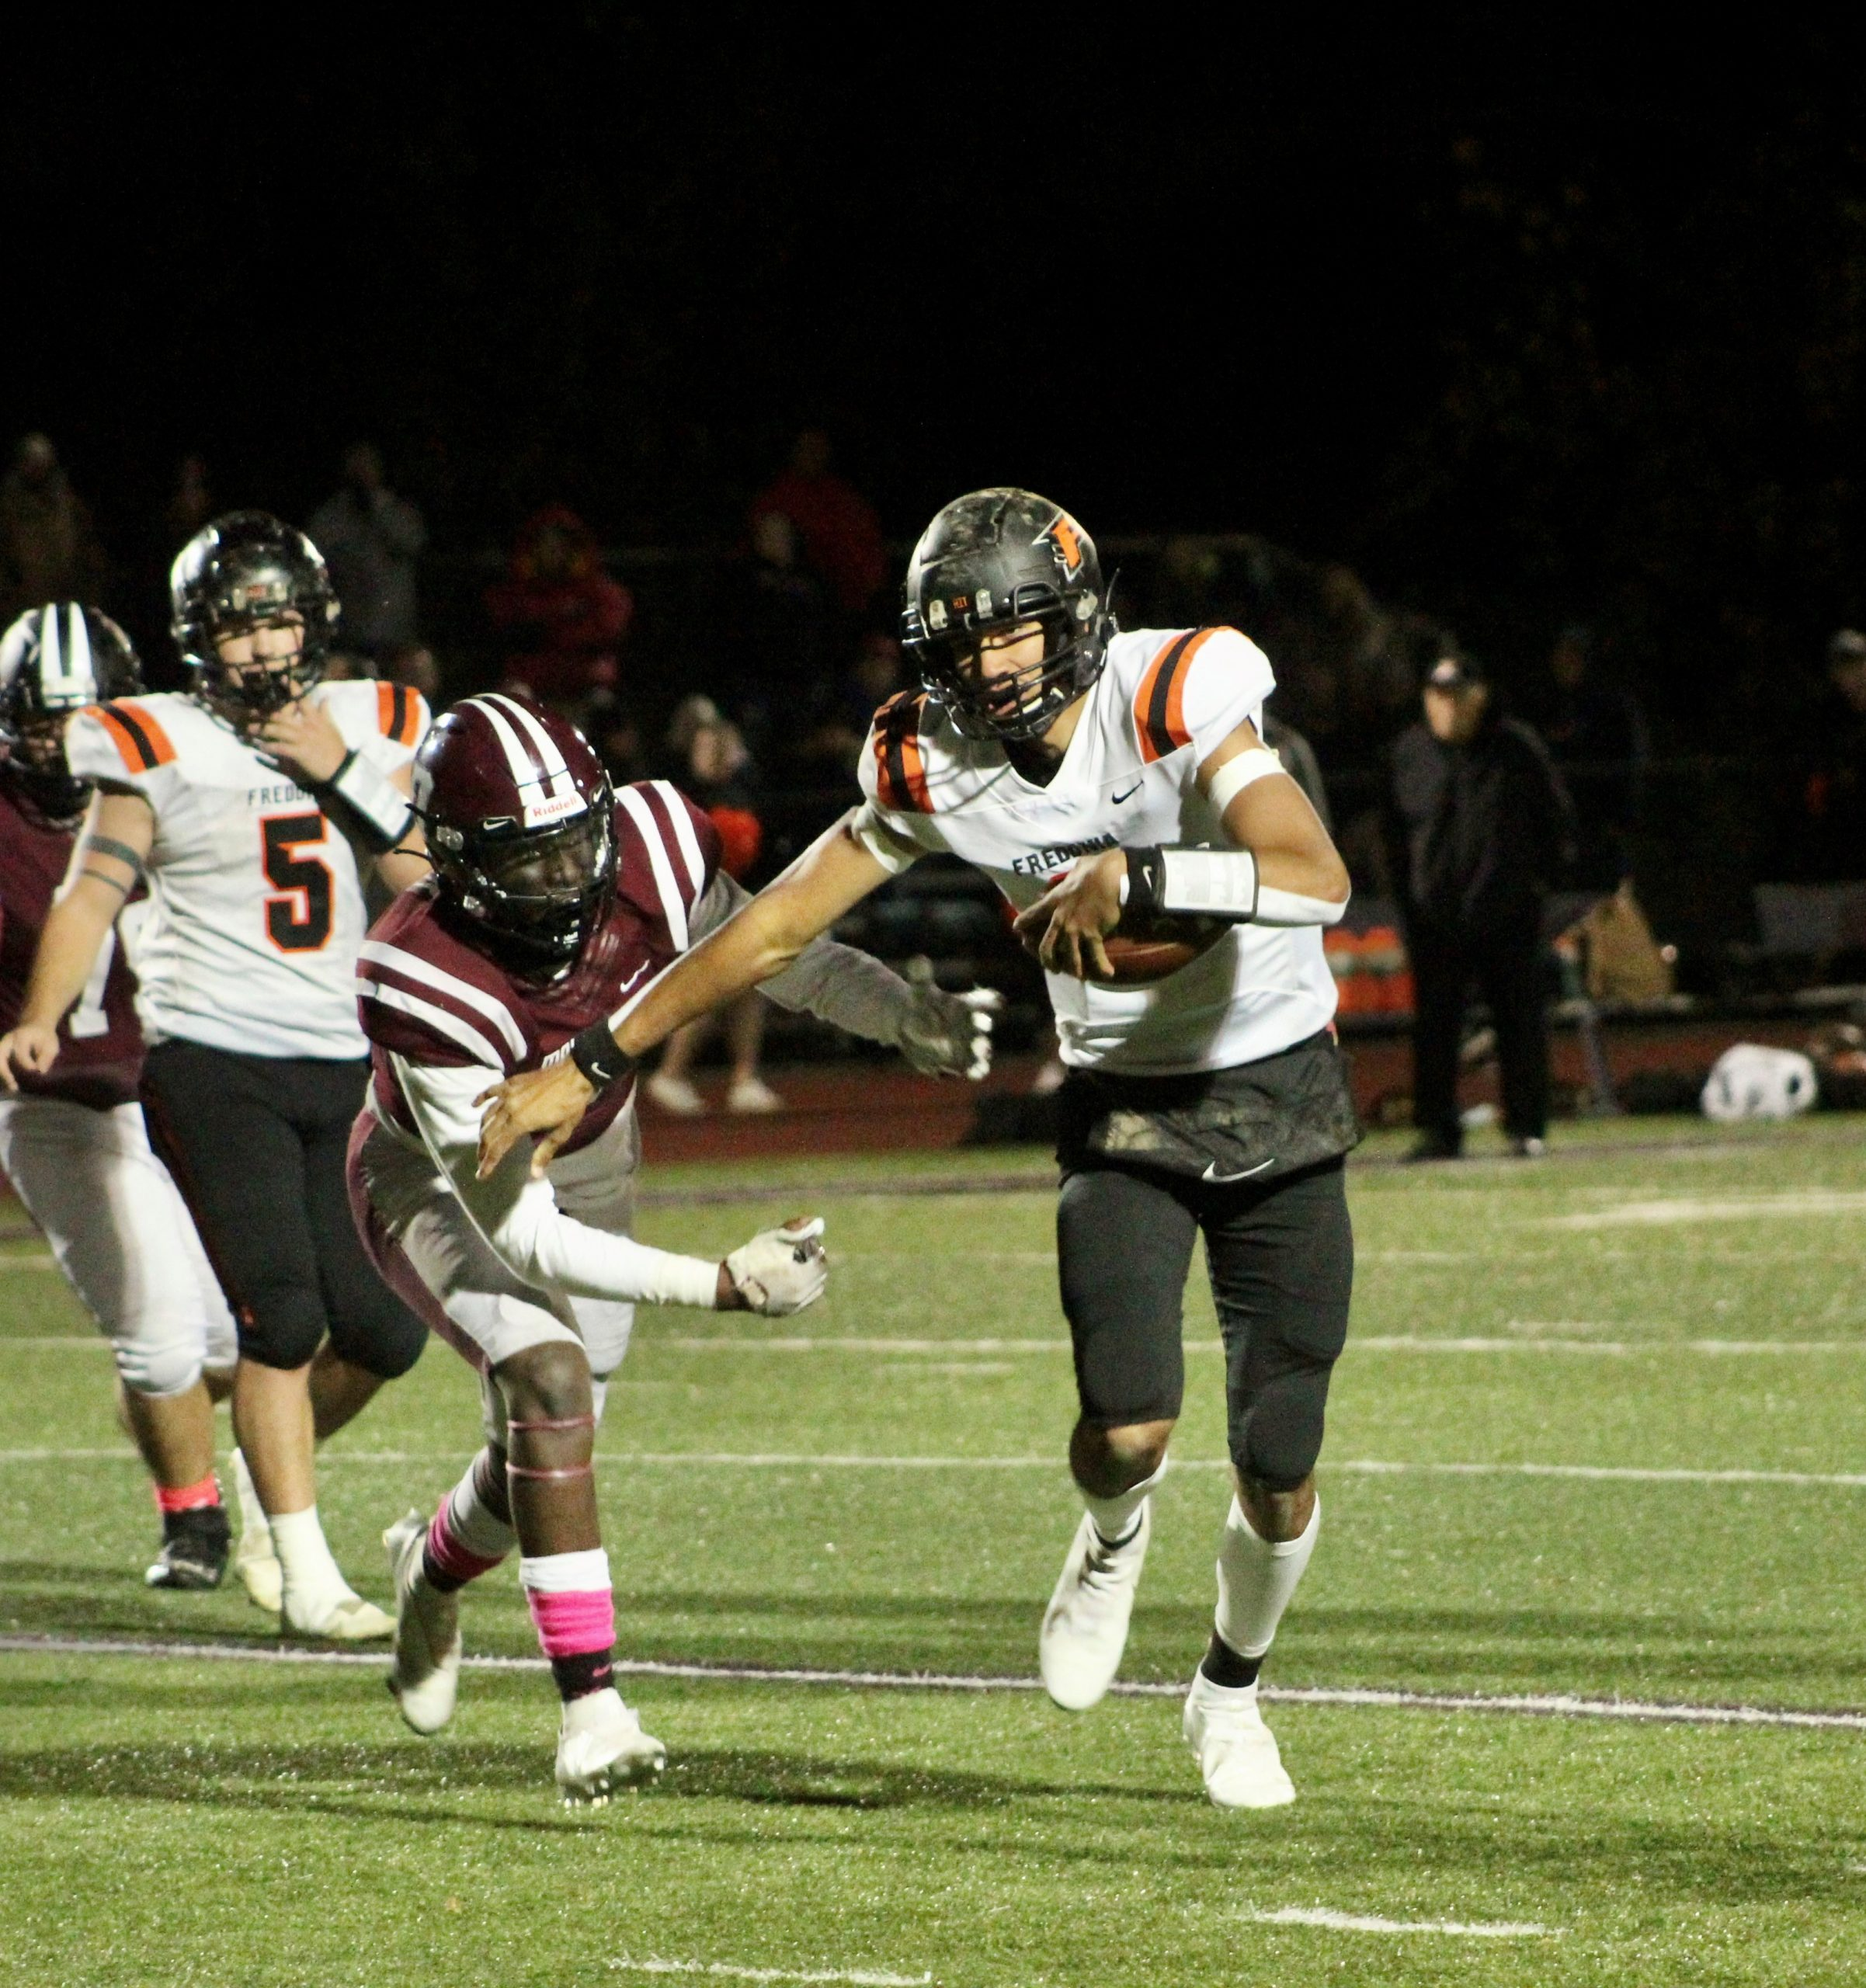 Fredonia finishes undefeated regular season with win over Dunkirk